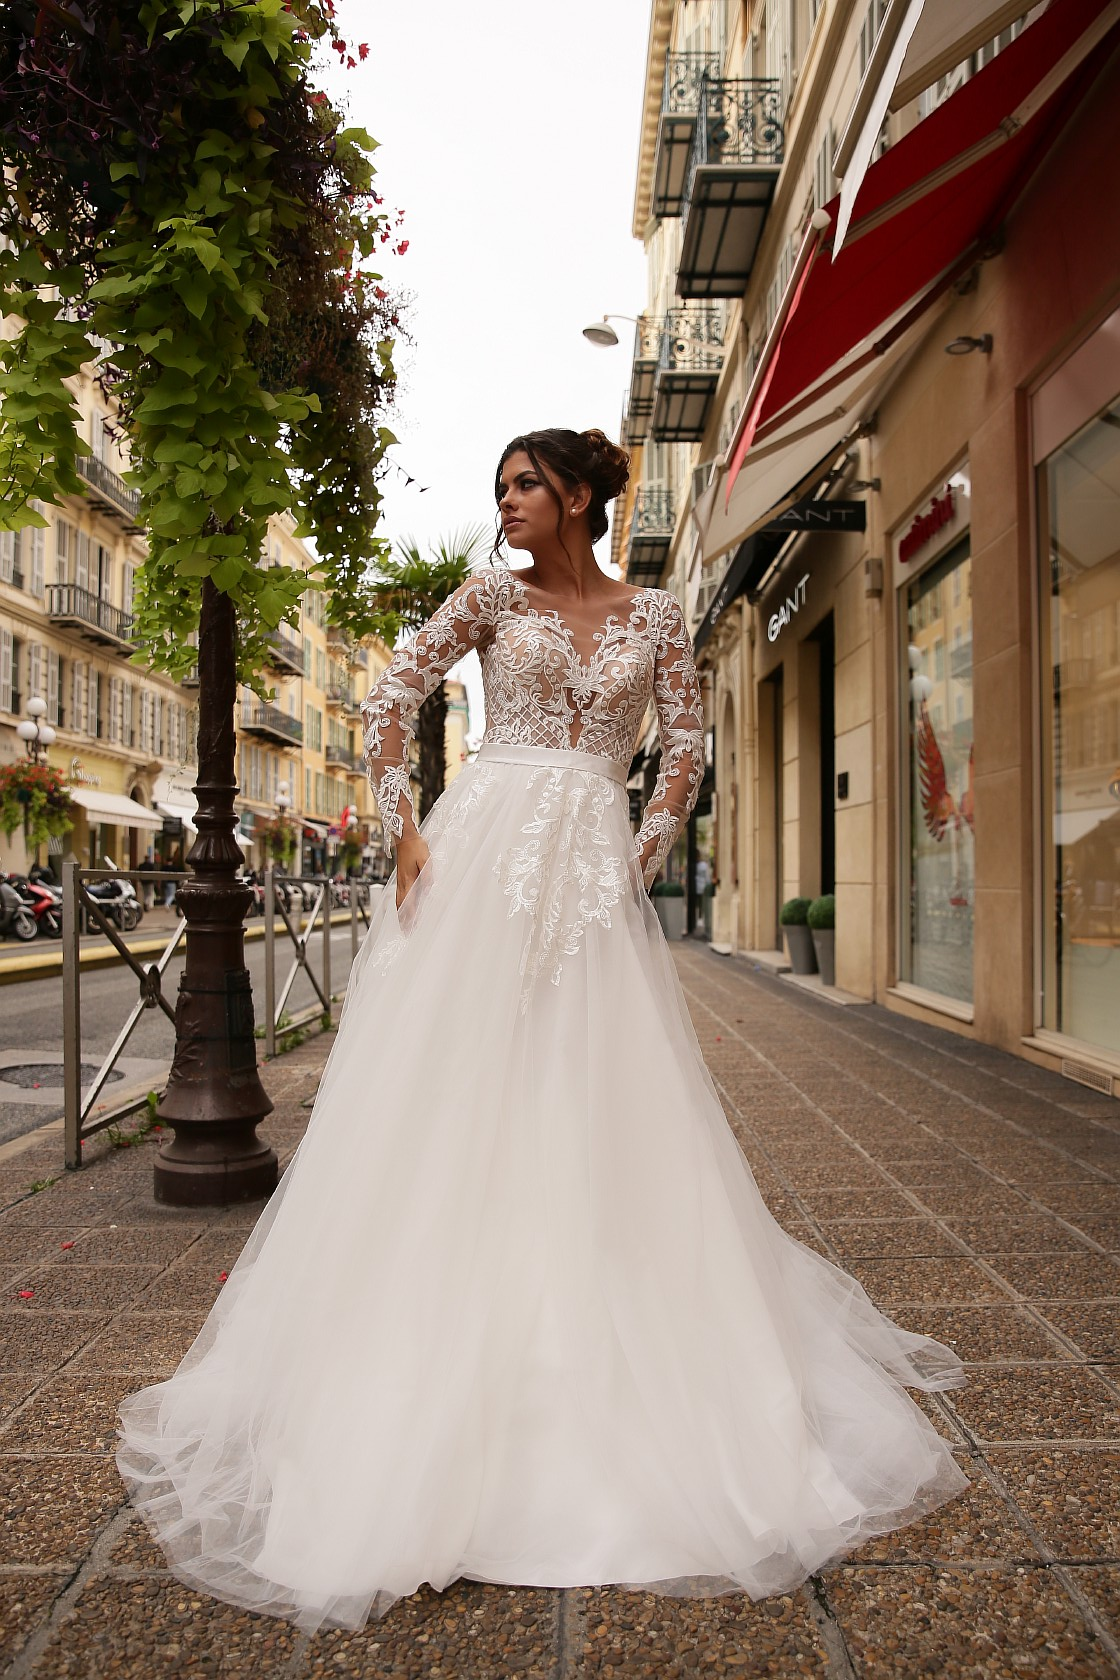 Wedding dress Renee Silhouette  A Line  Color  Cappuccino  Neckline  Sweetheart  Sleeves  Long Sleeves  Train  With train